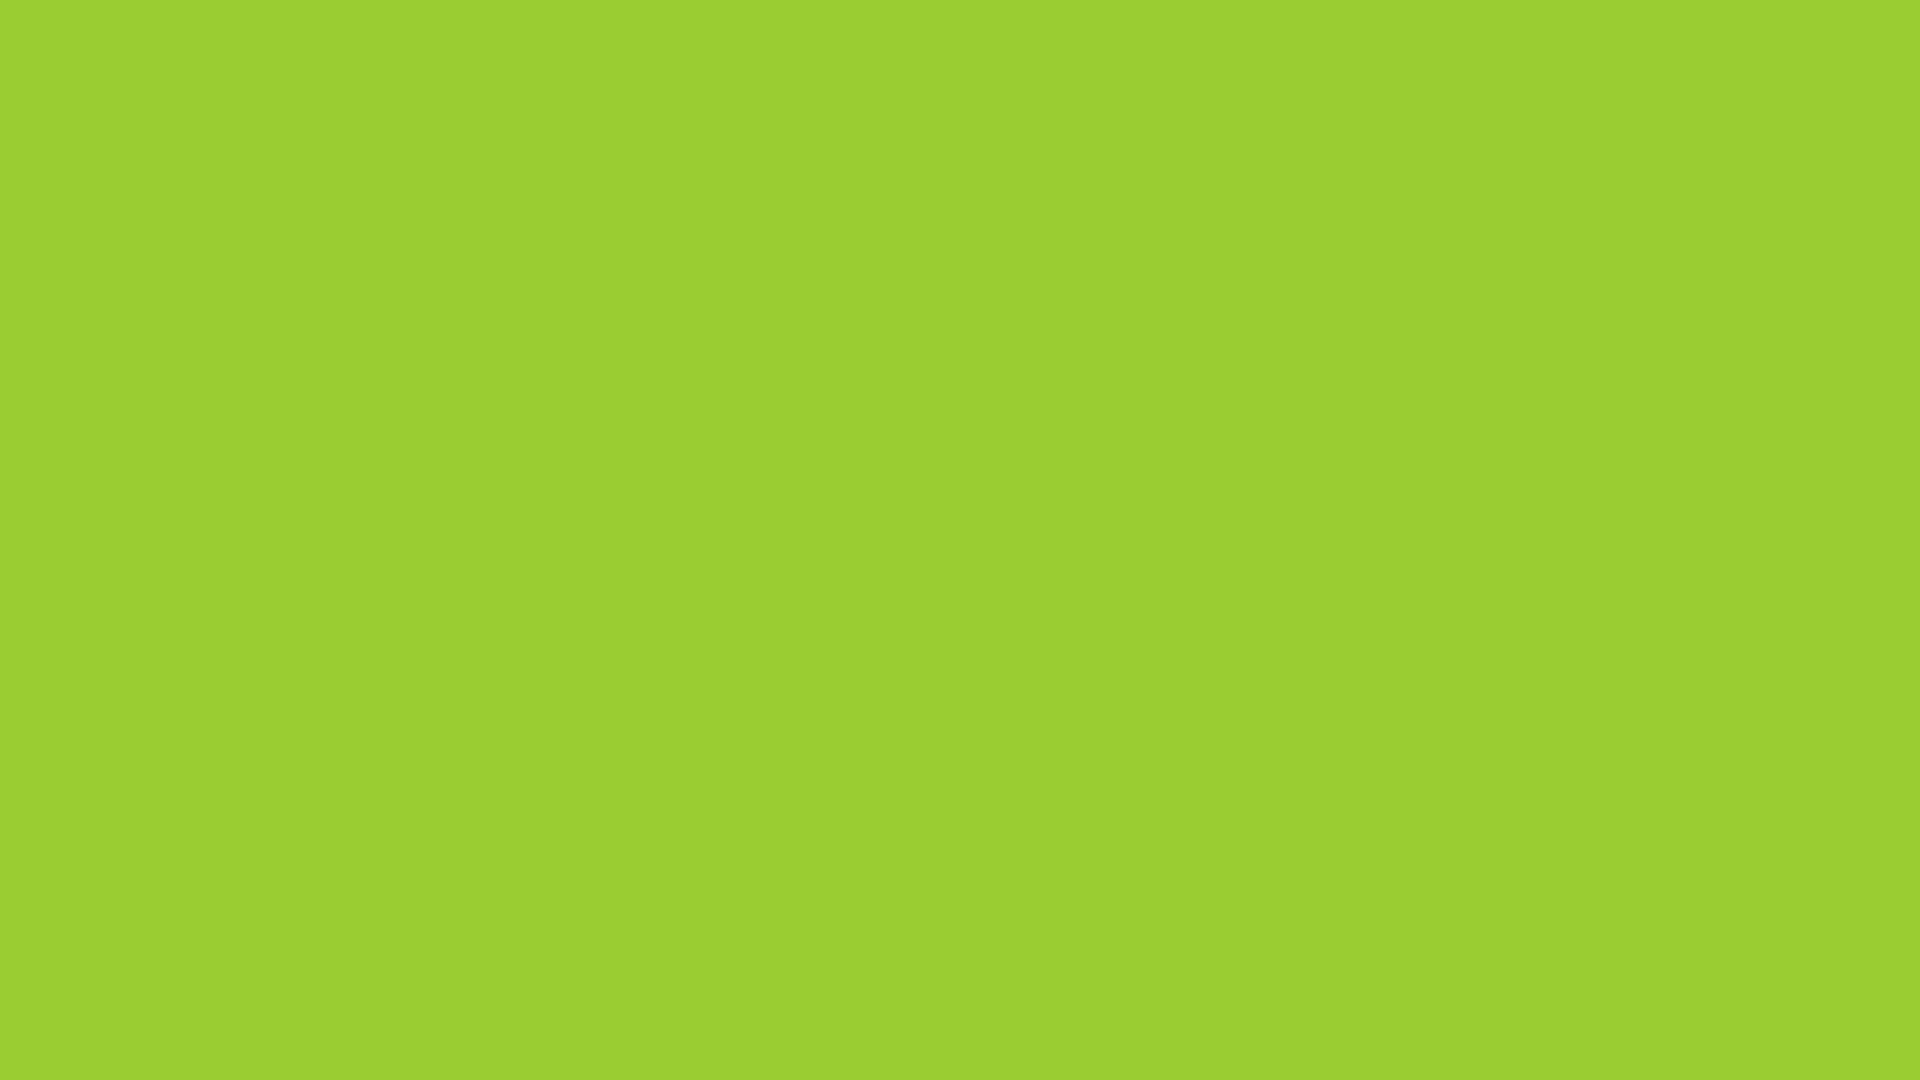 1920x1080 Yellow-green Solid Color Background